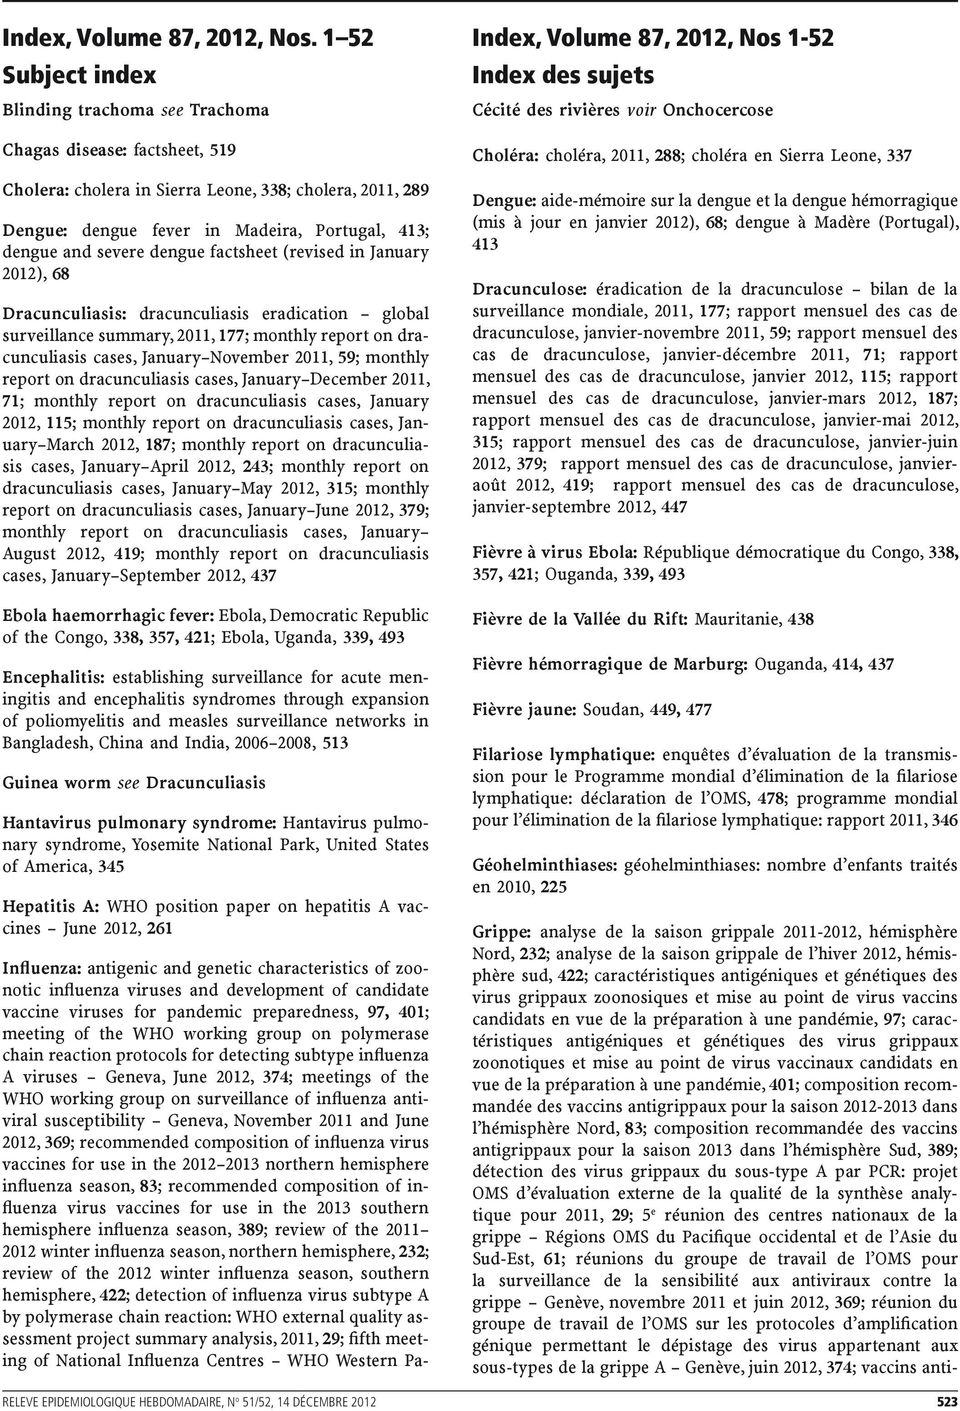 severe dengue factsheet (revised in January 2012), 68 Dracunculiasis: dracunculiasis eradication global surveillance summary, 2011, 177; monthly report on dracunculiasis cases, January November 2011,